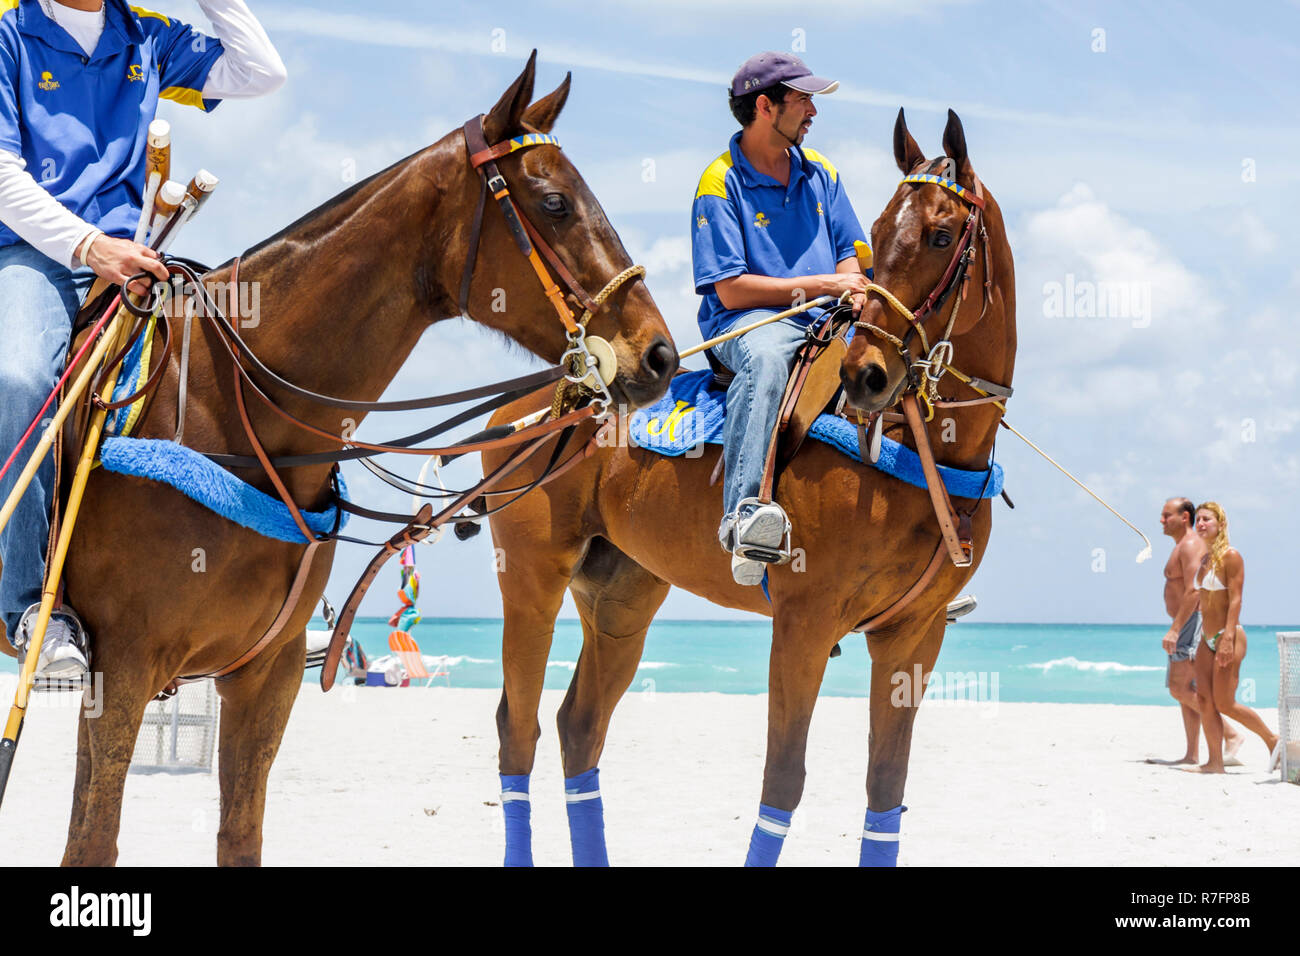 Miami Beach, Florida Polo World Cup Spiele Sport Turnier Reiterfall sand Feld Horse Pony Bräutigam trainer Hispanic Mann nicht Stockfoto